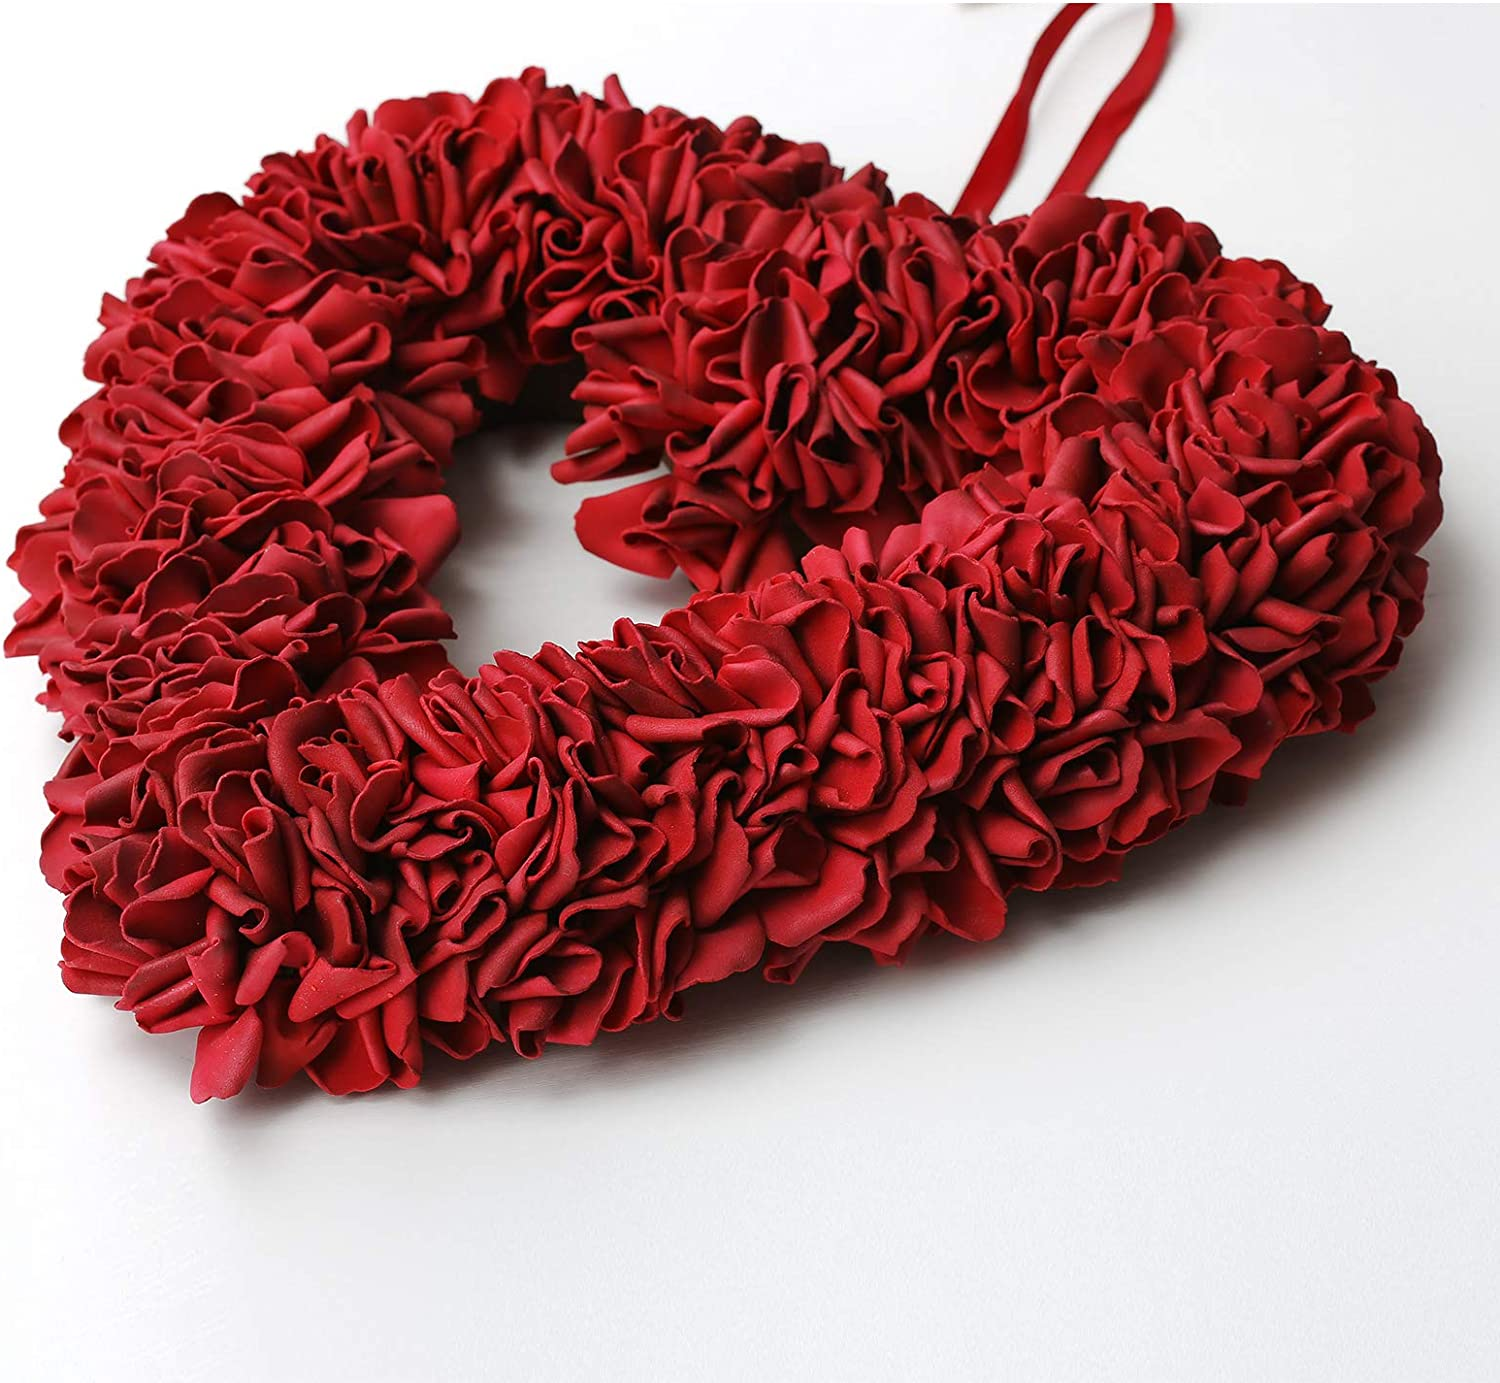 Wedding Party Orrhyunii 13 Wreath Floral Rose Wall Wreaths Heart Shaped Artificial Simulation Decorative Valentines Day Front Door Decorations Flowers for Home Staircase